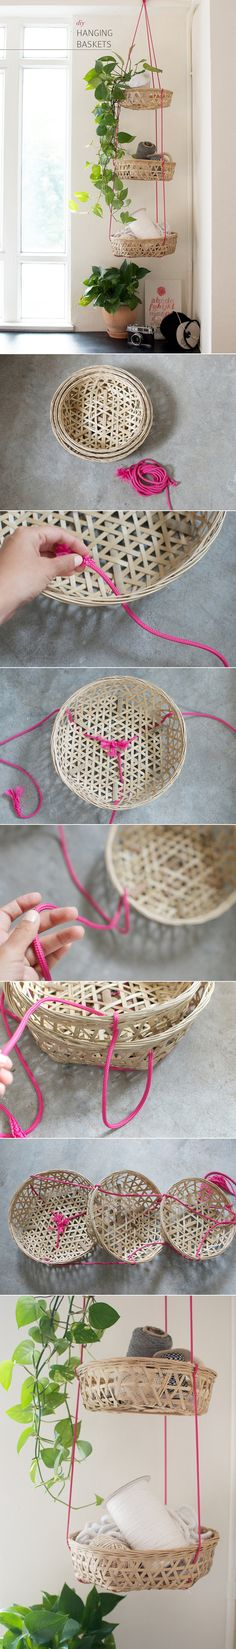 Discover thousands of images about DIY hanging baskets. Another fun idea for organising craft supplies and using less desk/counter space. Home Crafts, Fun Crafts, Diy Home Decor, Diy And Crafts, Arts And Crafts, Diy Hanging, Hanging Baskets, Diy Projects To Try, Craft Projects